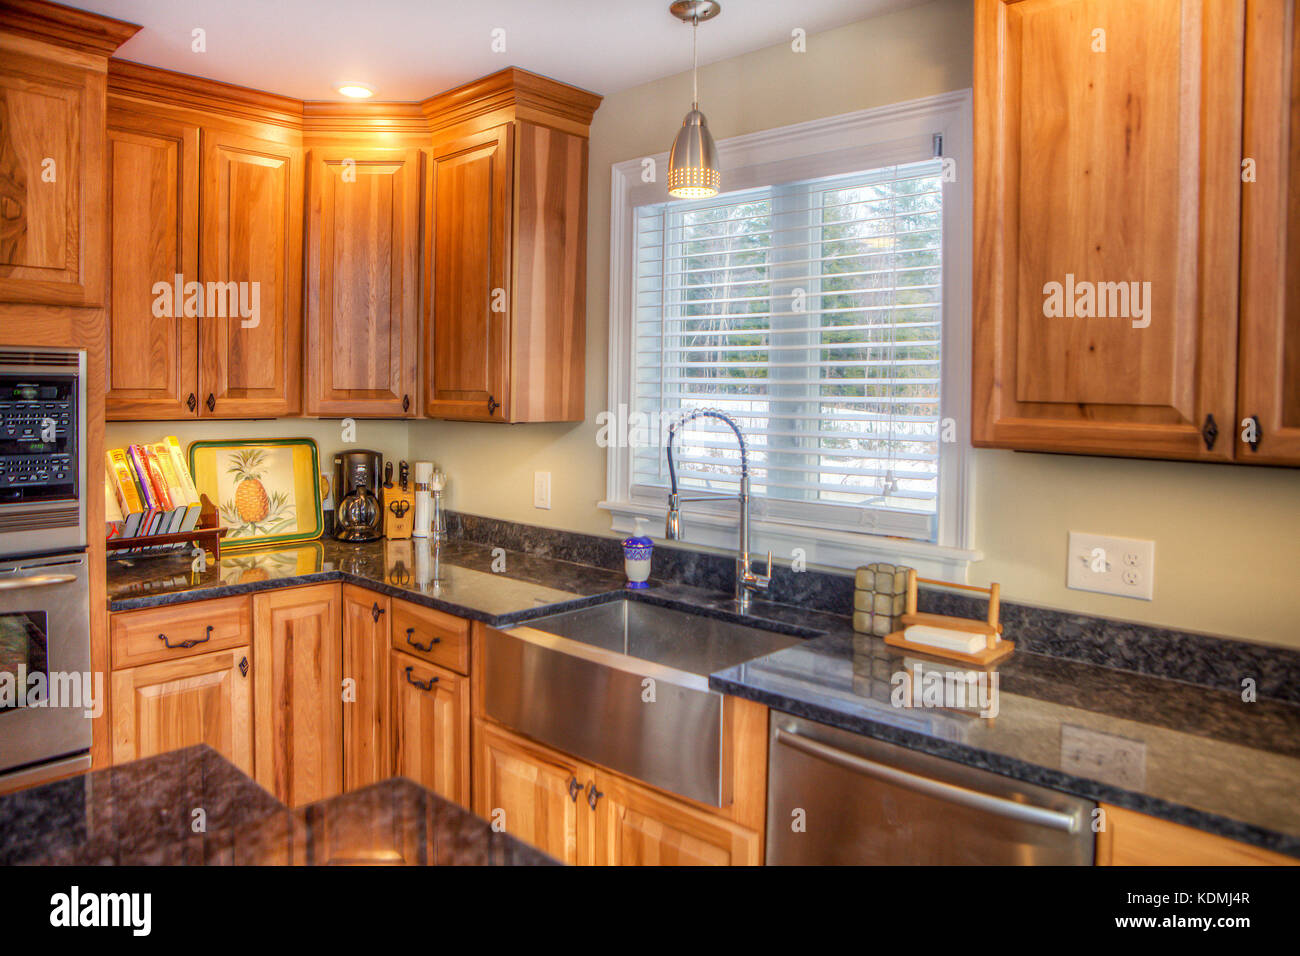 Stainless Steel Appliances In A Modern, Upscale Kitchen In Vermont Stock  Photo: 163337127   Alamy